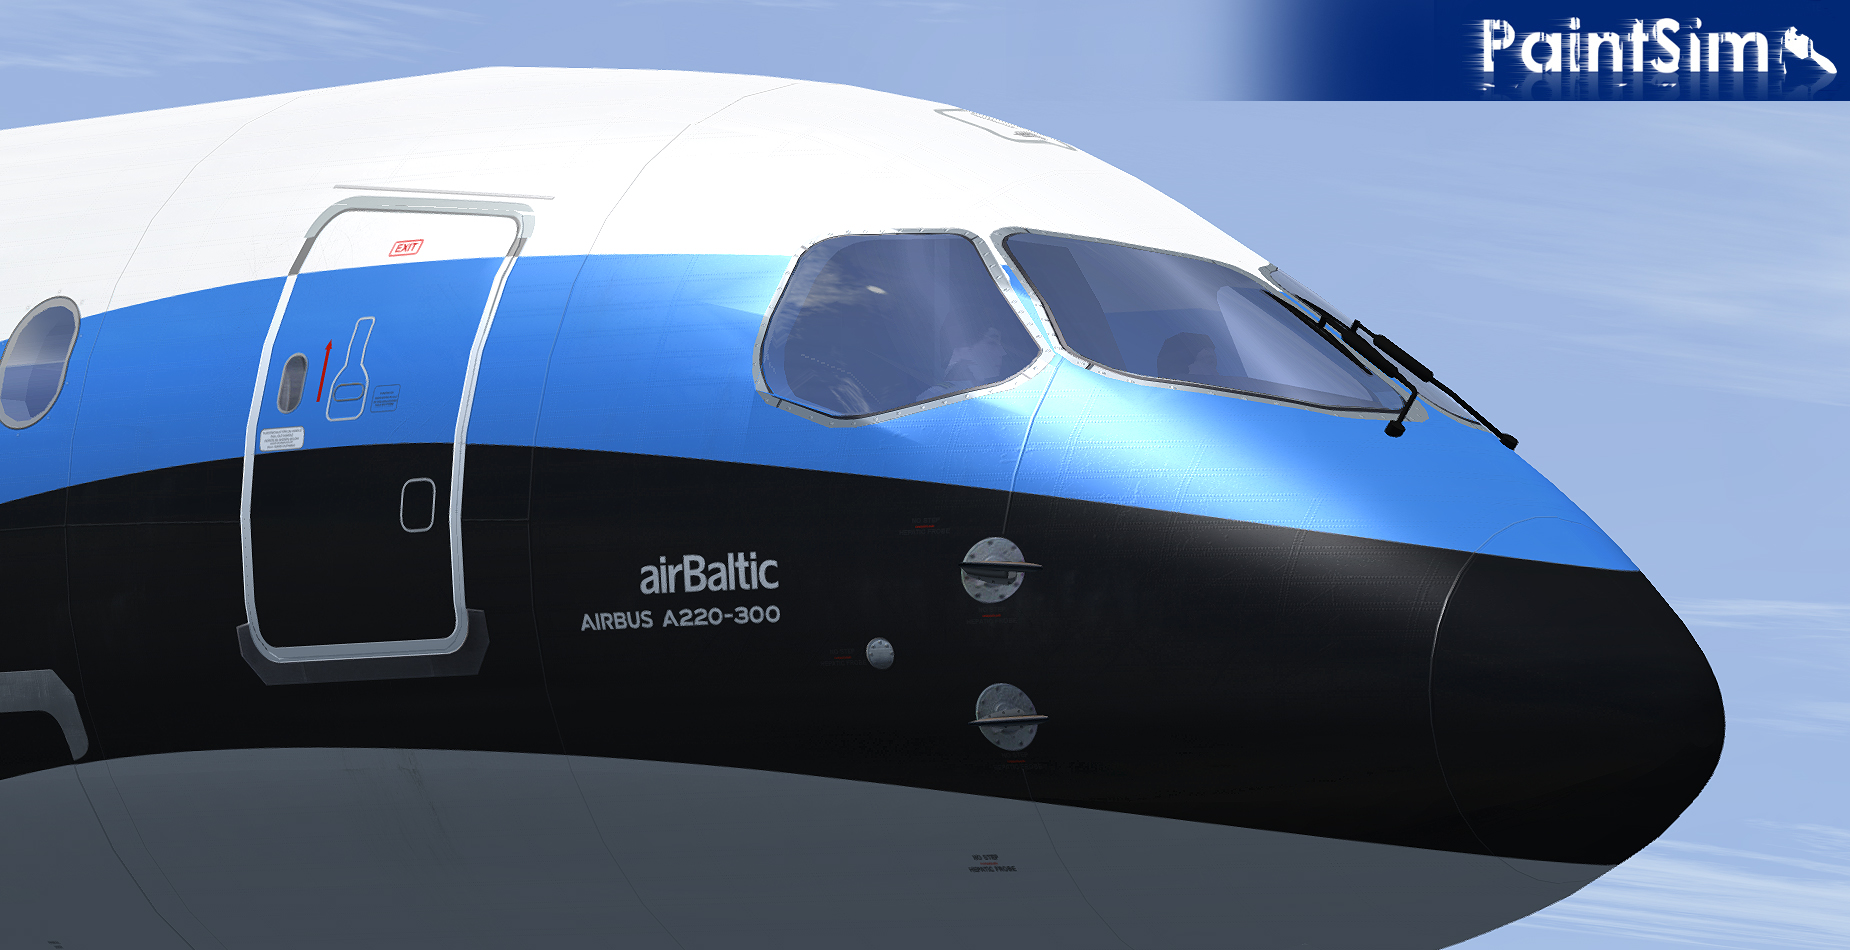 PAINTSIM - UHD TEXTURE PACK 4 FOR VIRTUALCOL AIRBUS A220-300 FSX P3D